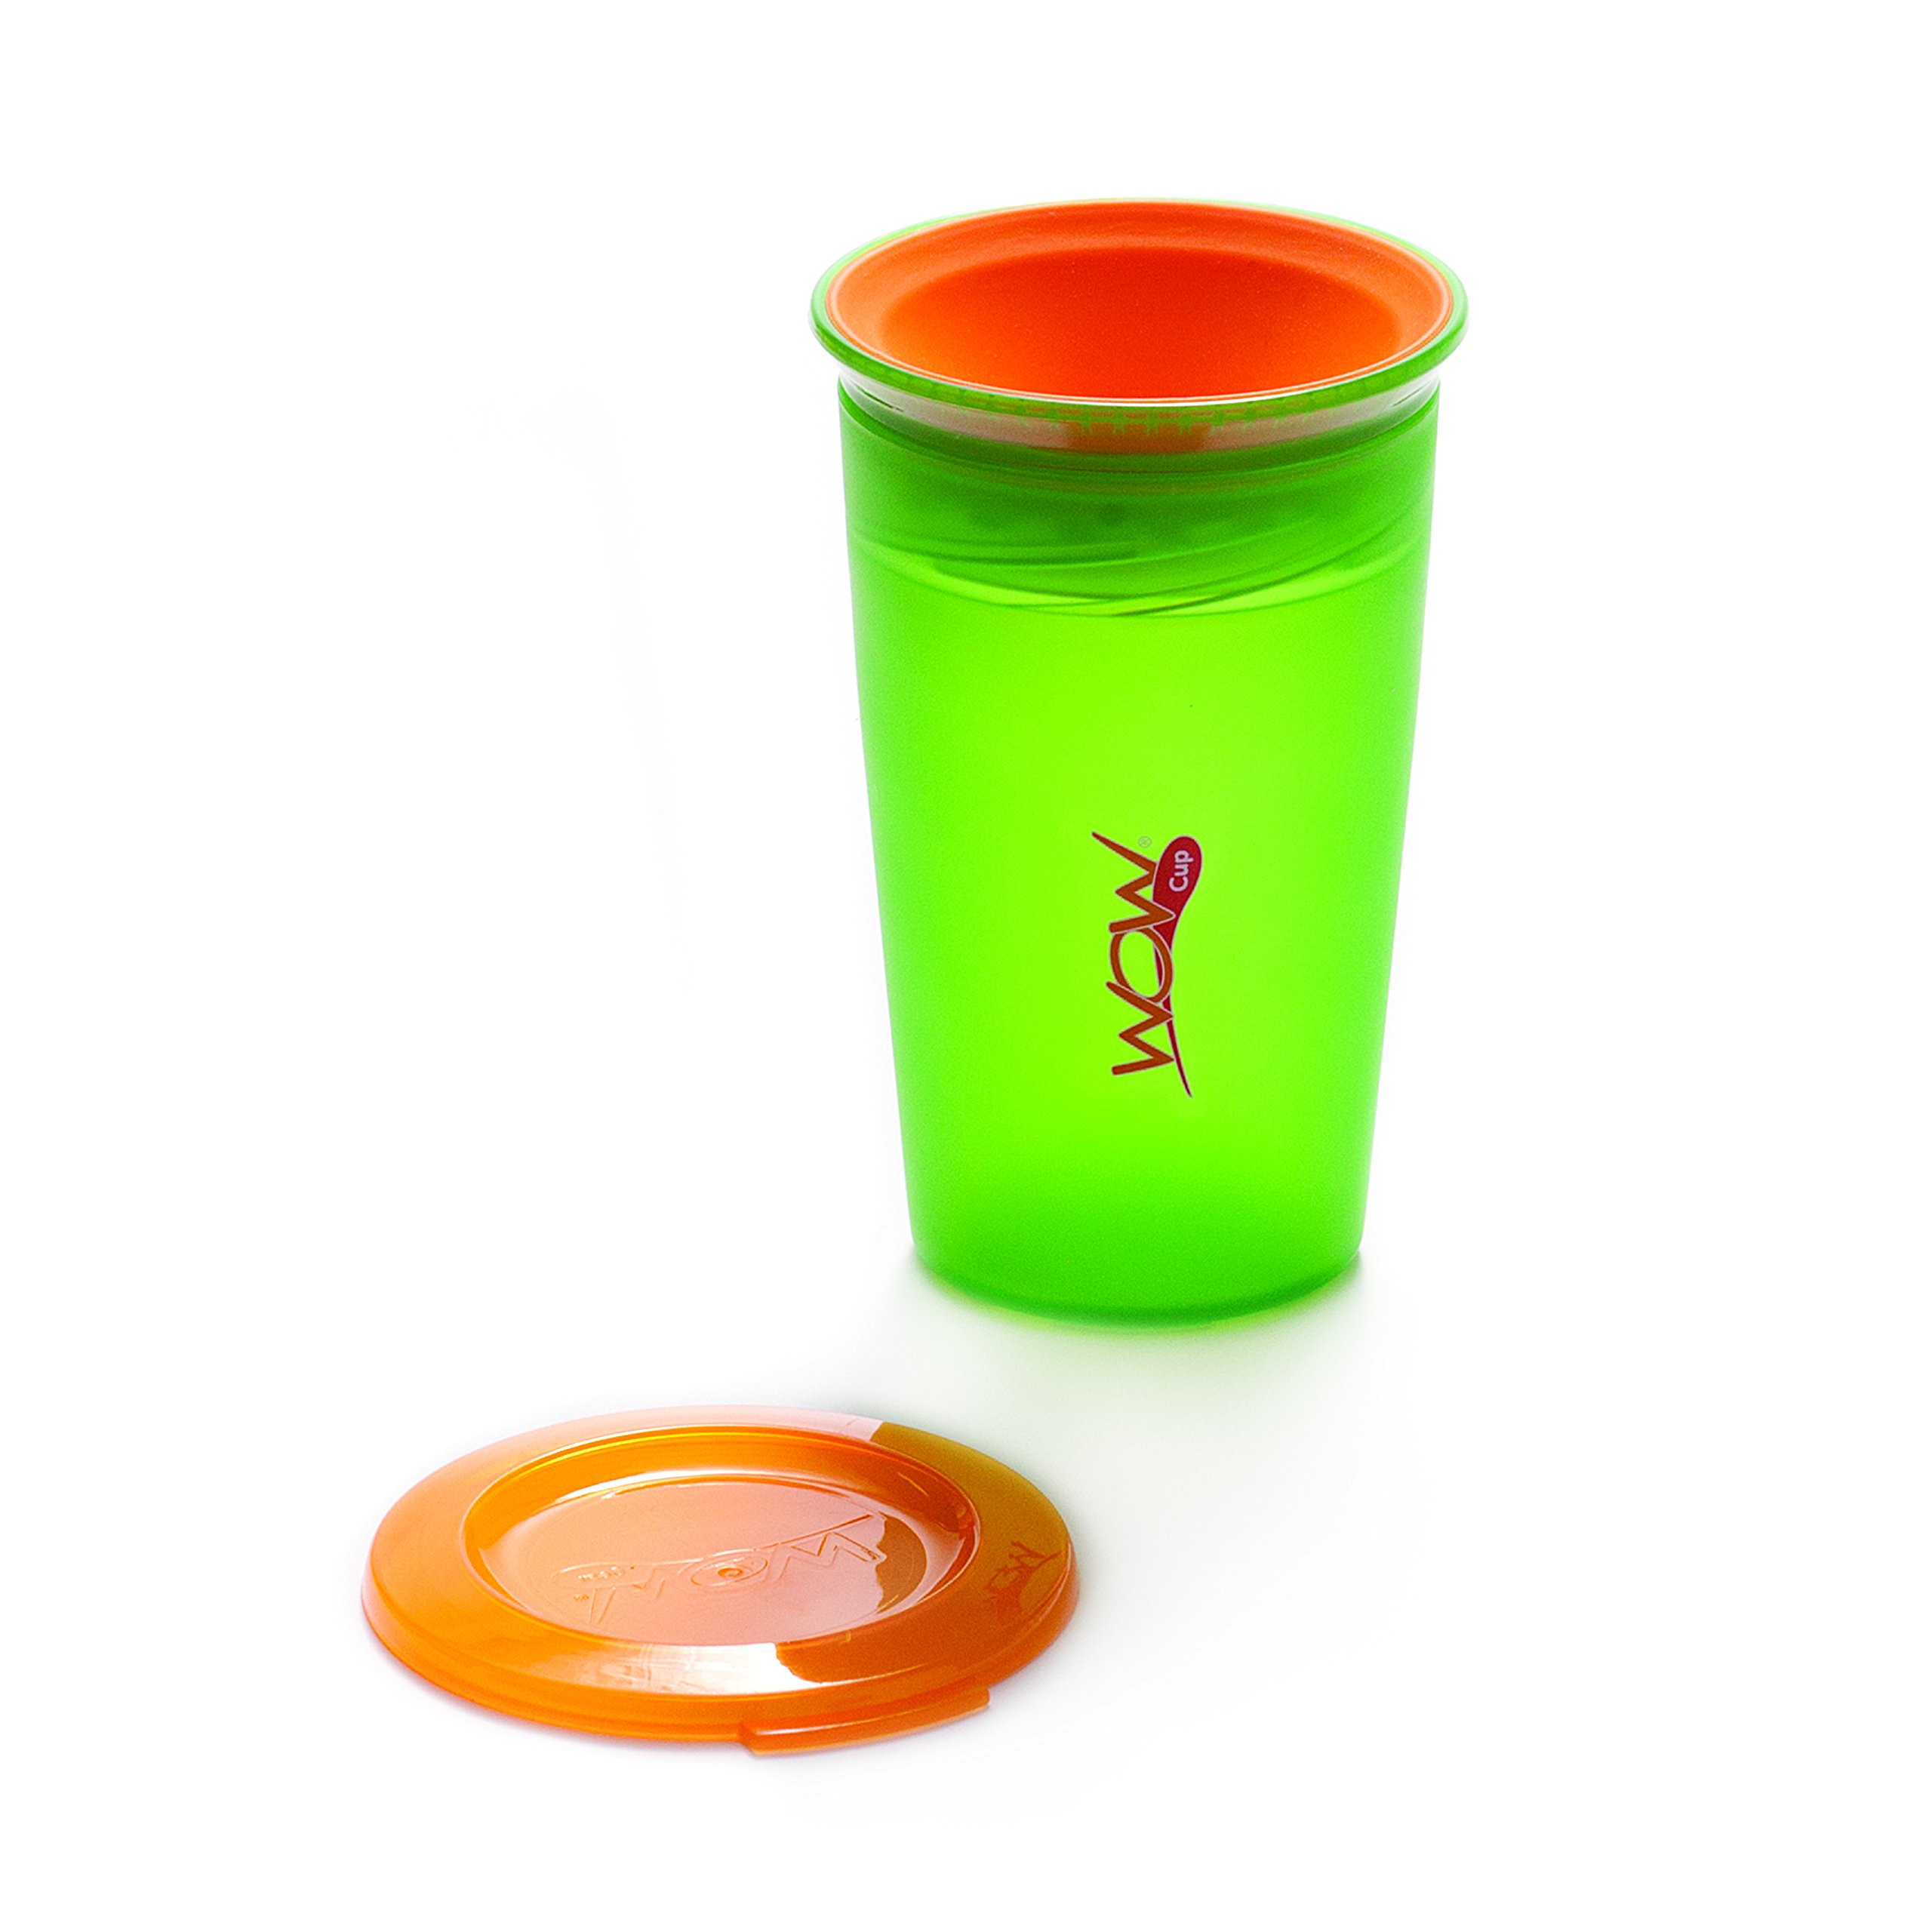 Amazon.com : Wow Cup for Kids - NEW Innovative 360 Spill Free ...